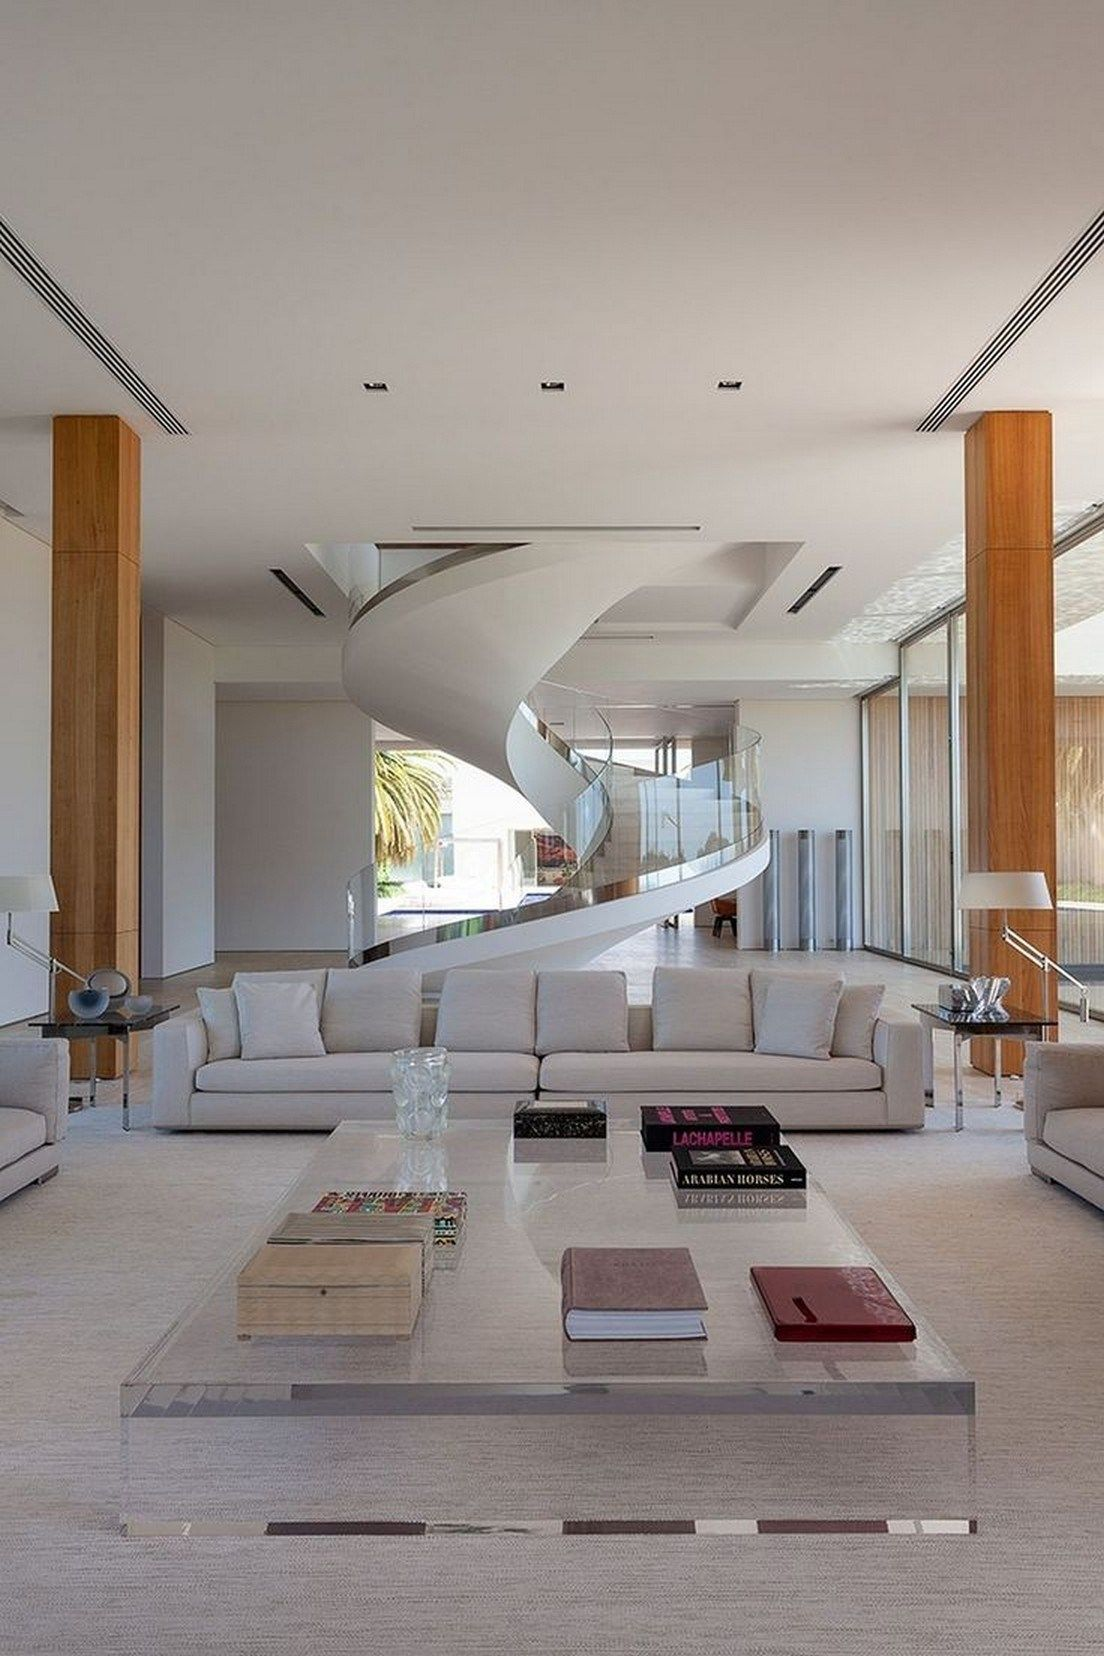 43 The Most Unique Modern Home Design In The World 2019 2